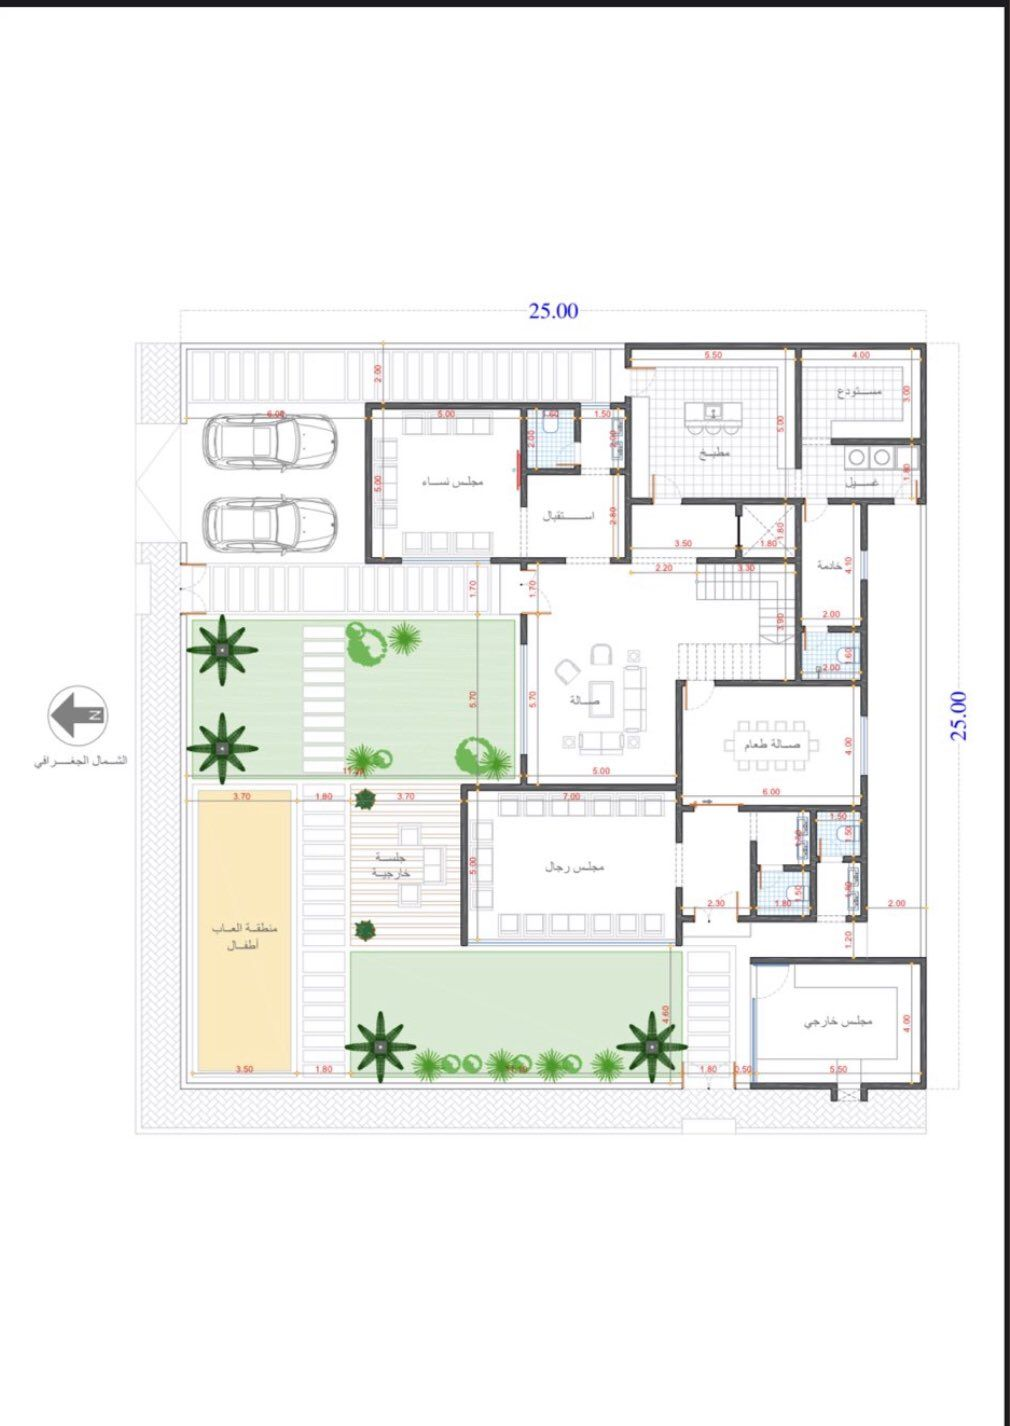 مخططات فلل On Twitter My House Plans Unique House Plans Family House Plans